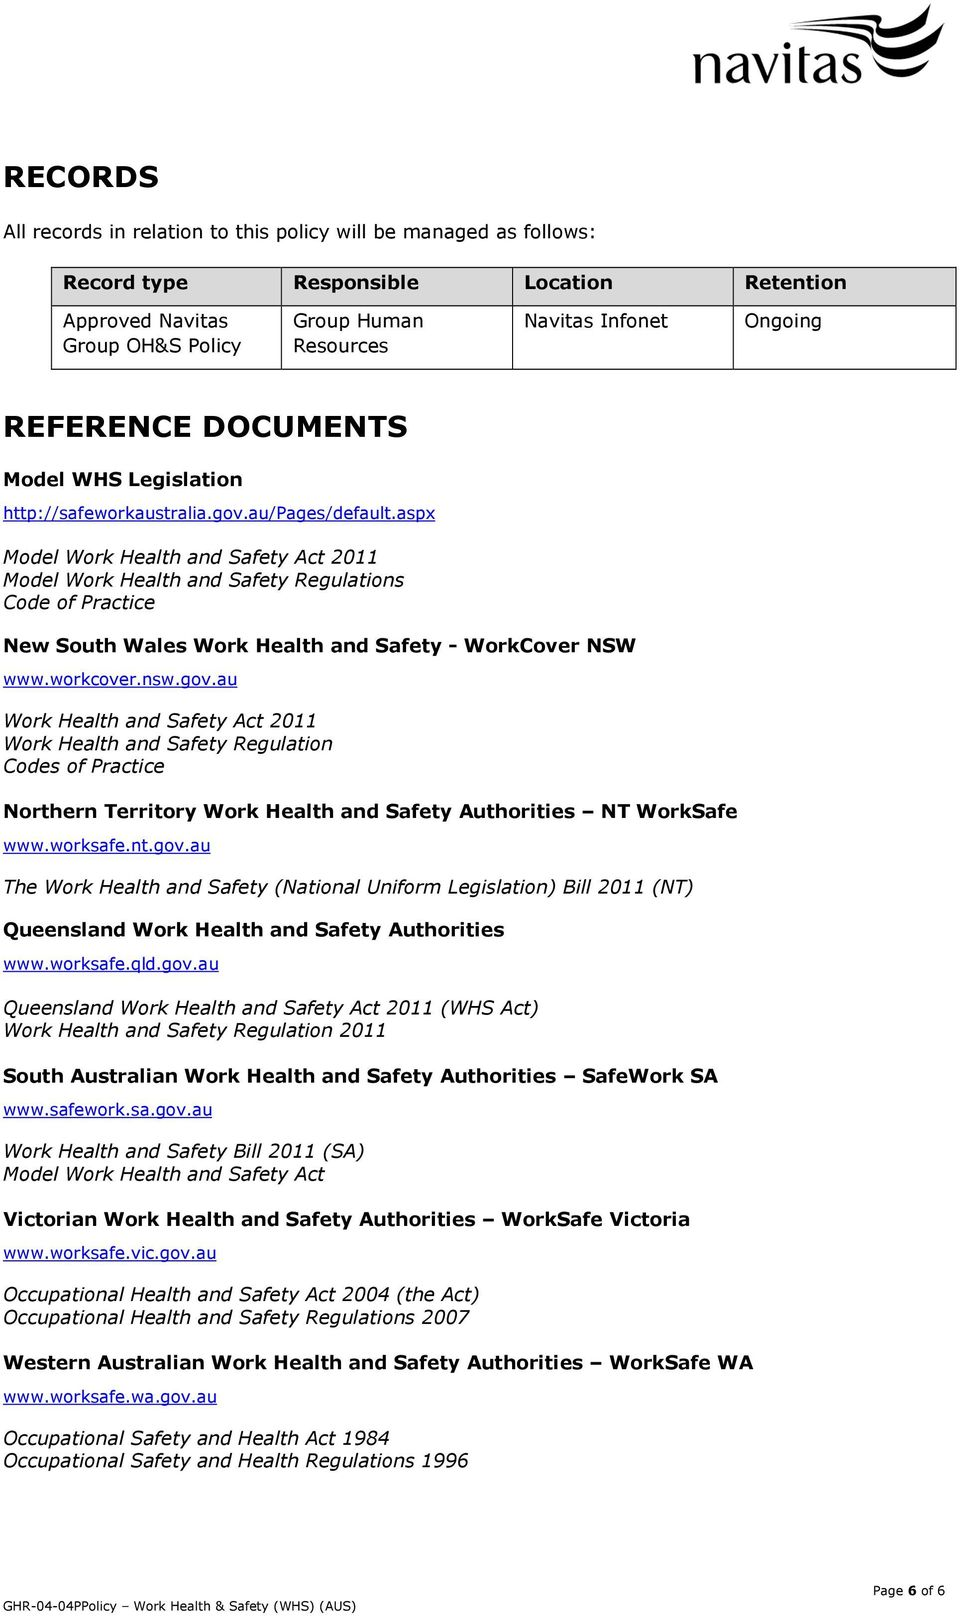 aspx Model Work Health and Safety Act 2011 Model Work Health and Safety Regulations Code of Practice New South Wales Work Health and Safety - WorkCover NSW www.workcover.nsw.gov.